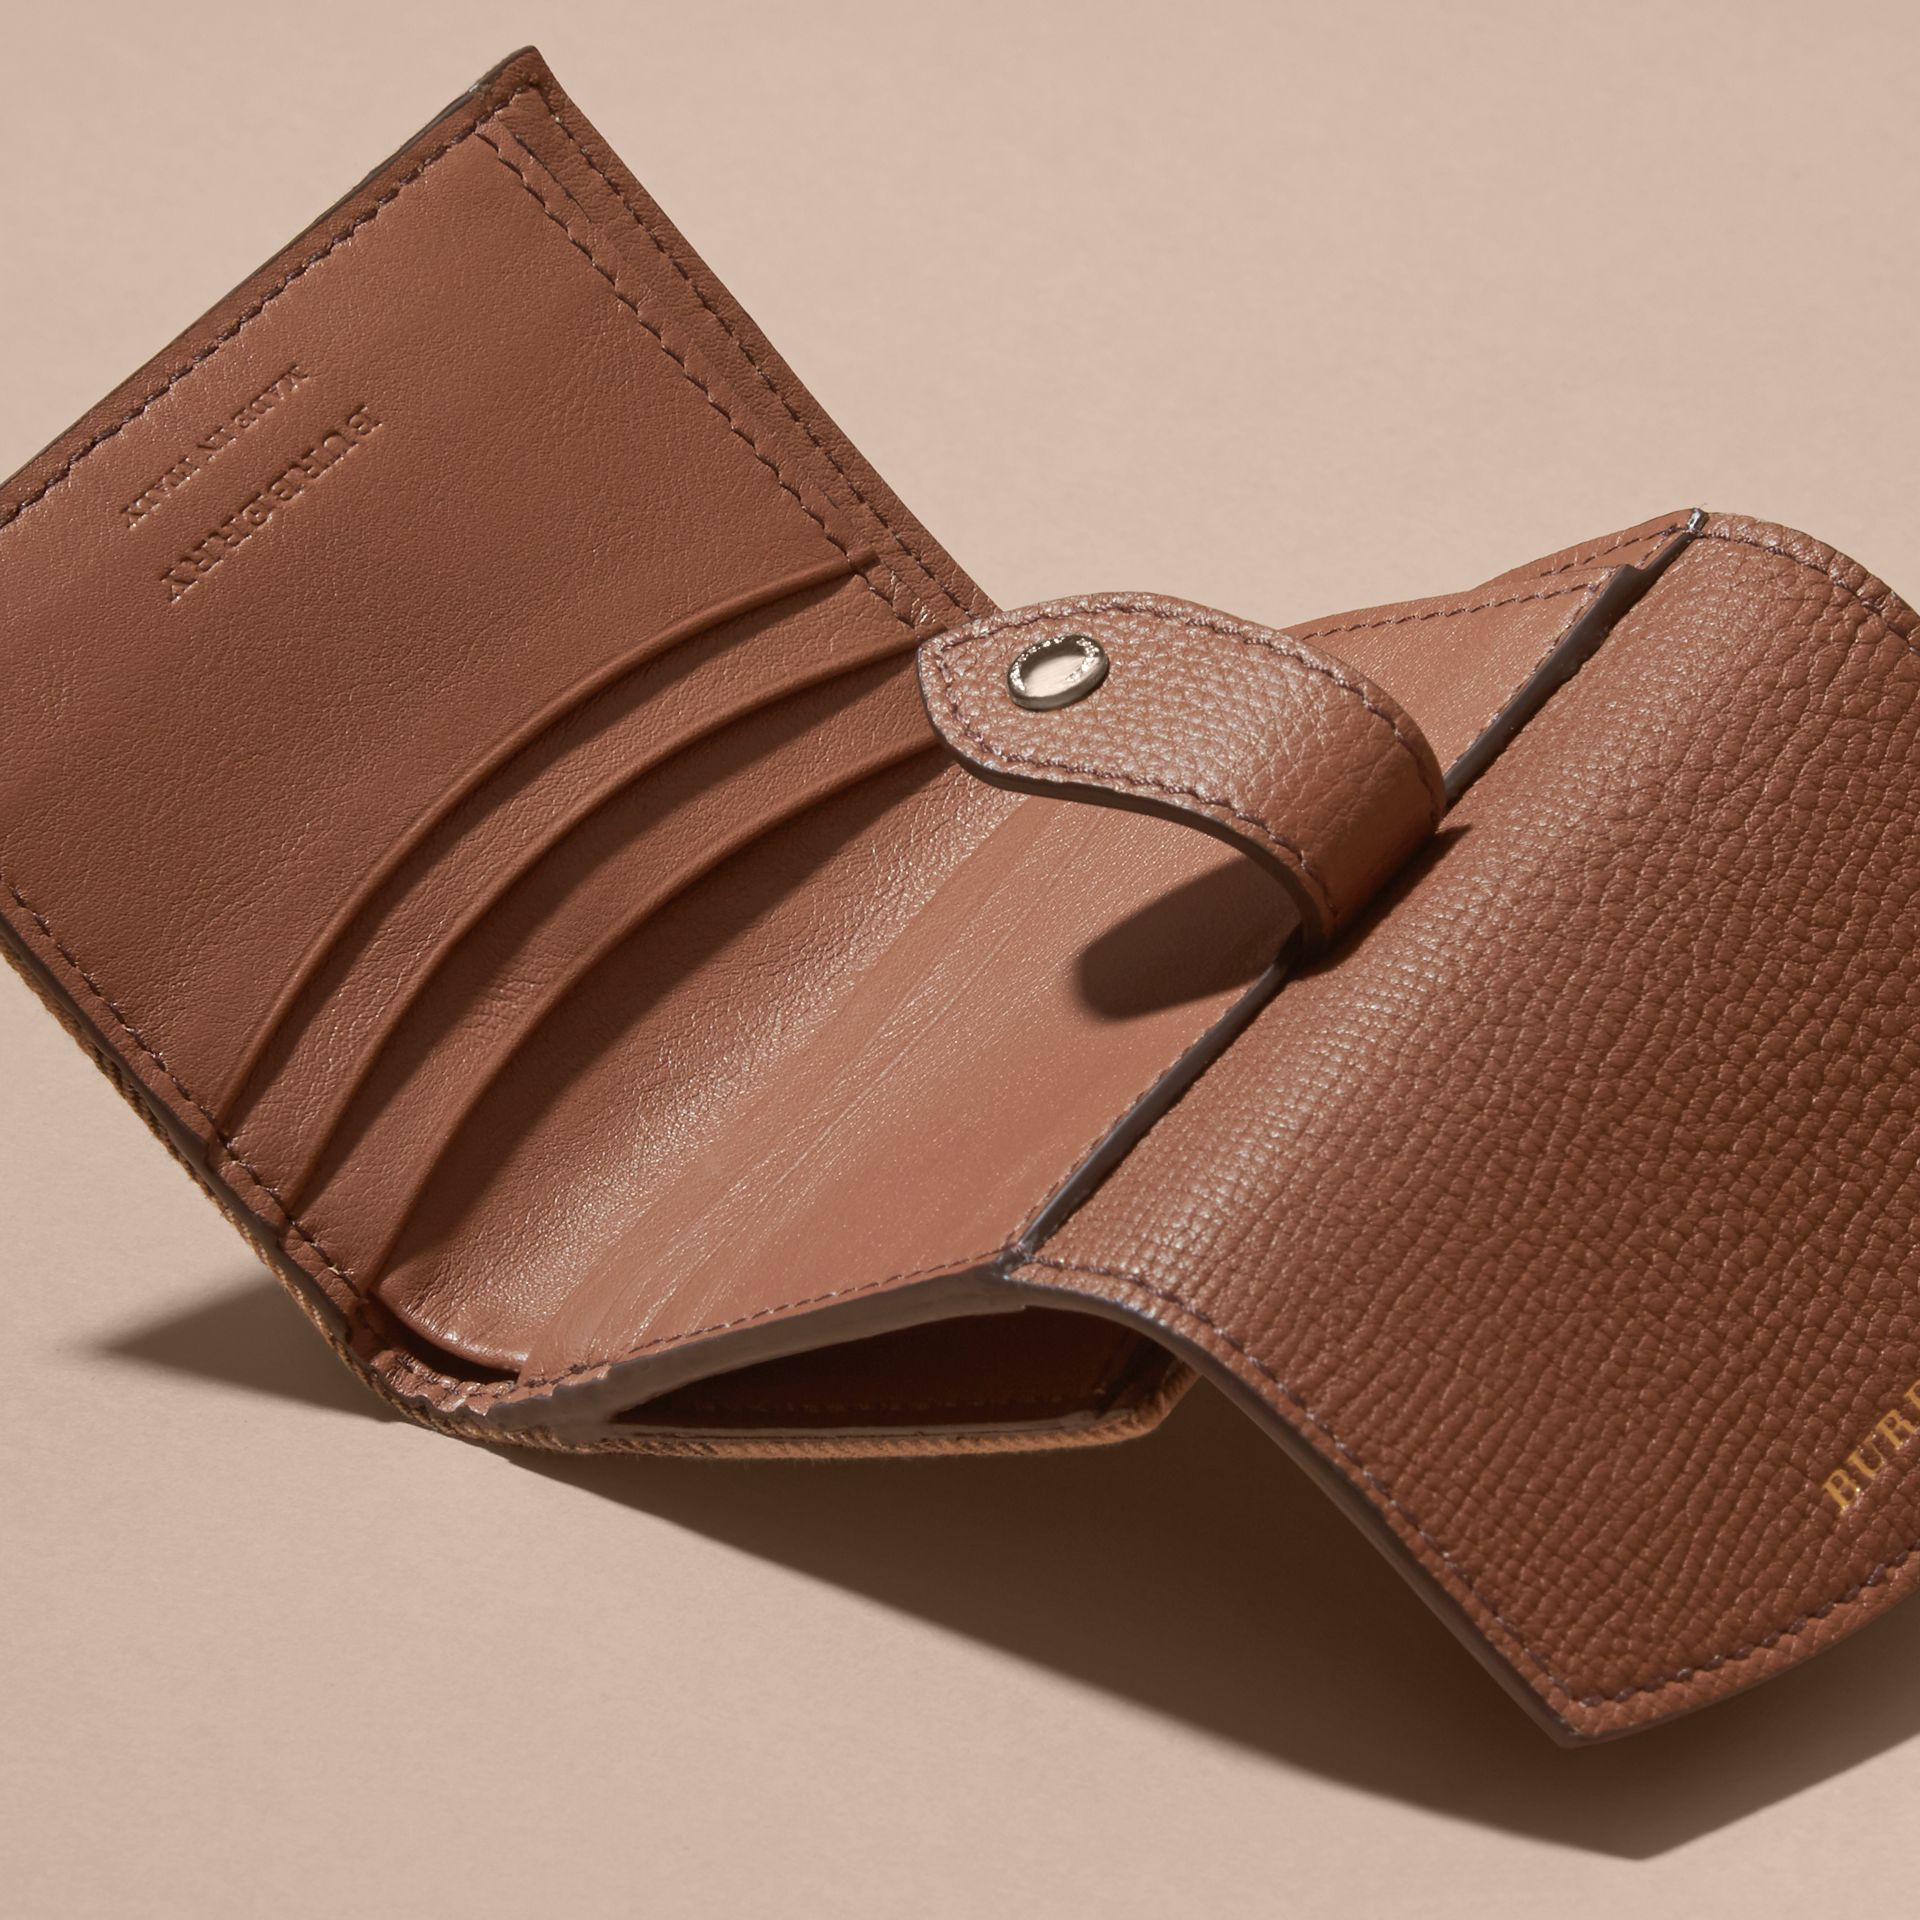 House Check and Leather Wallet in Tan - Women | Burberry - gallery image 6